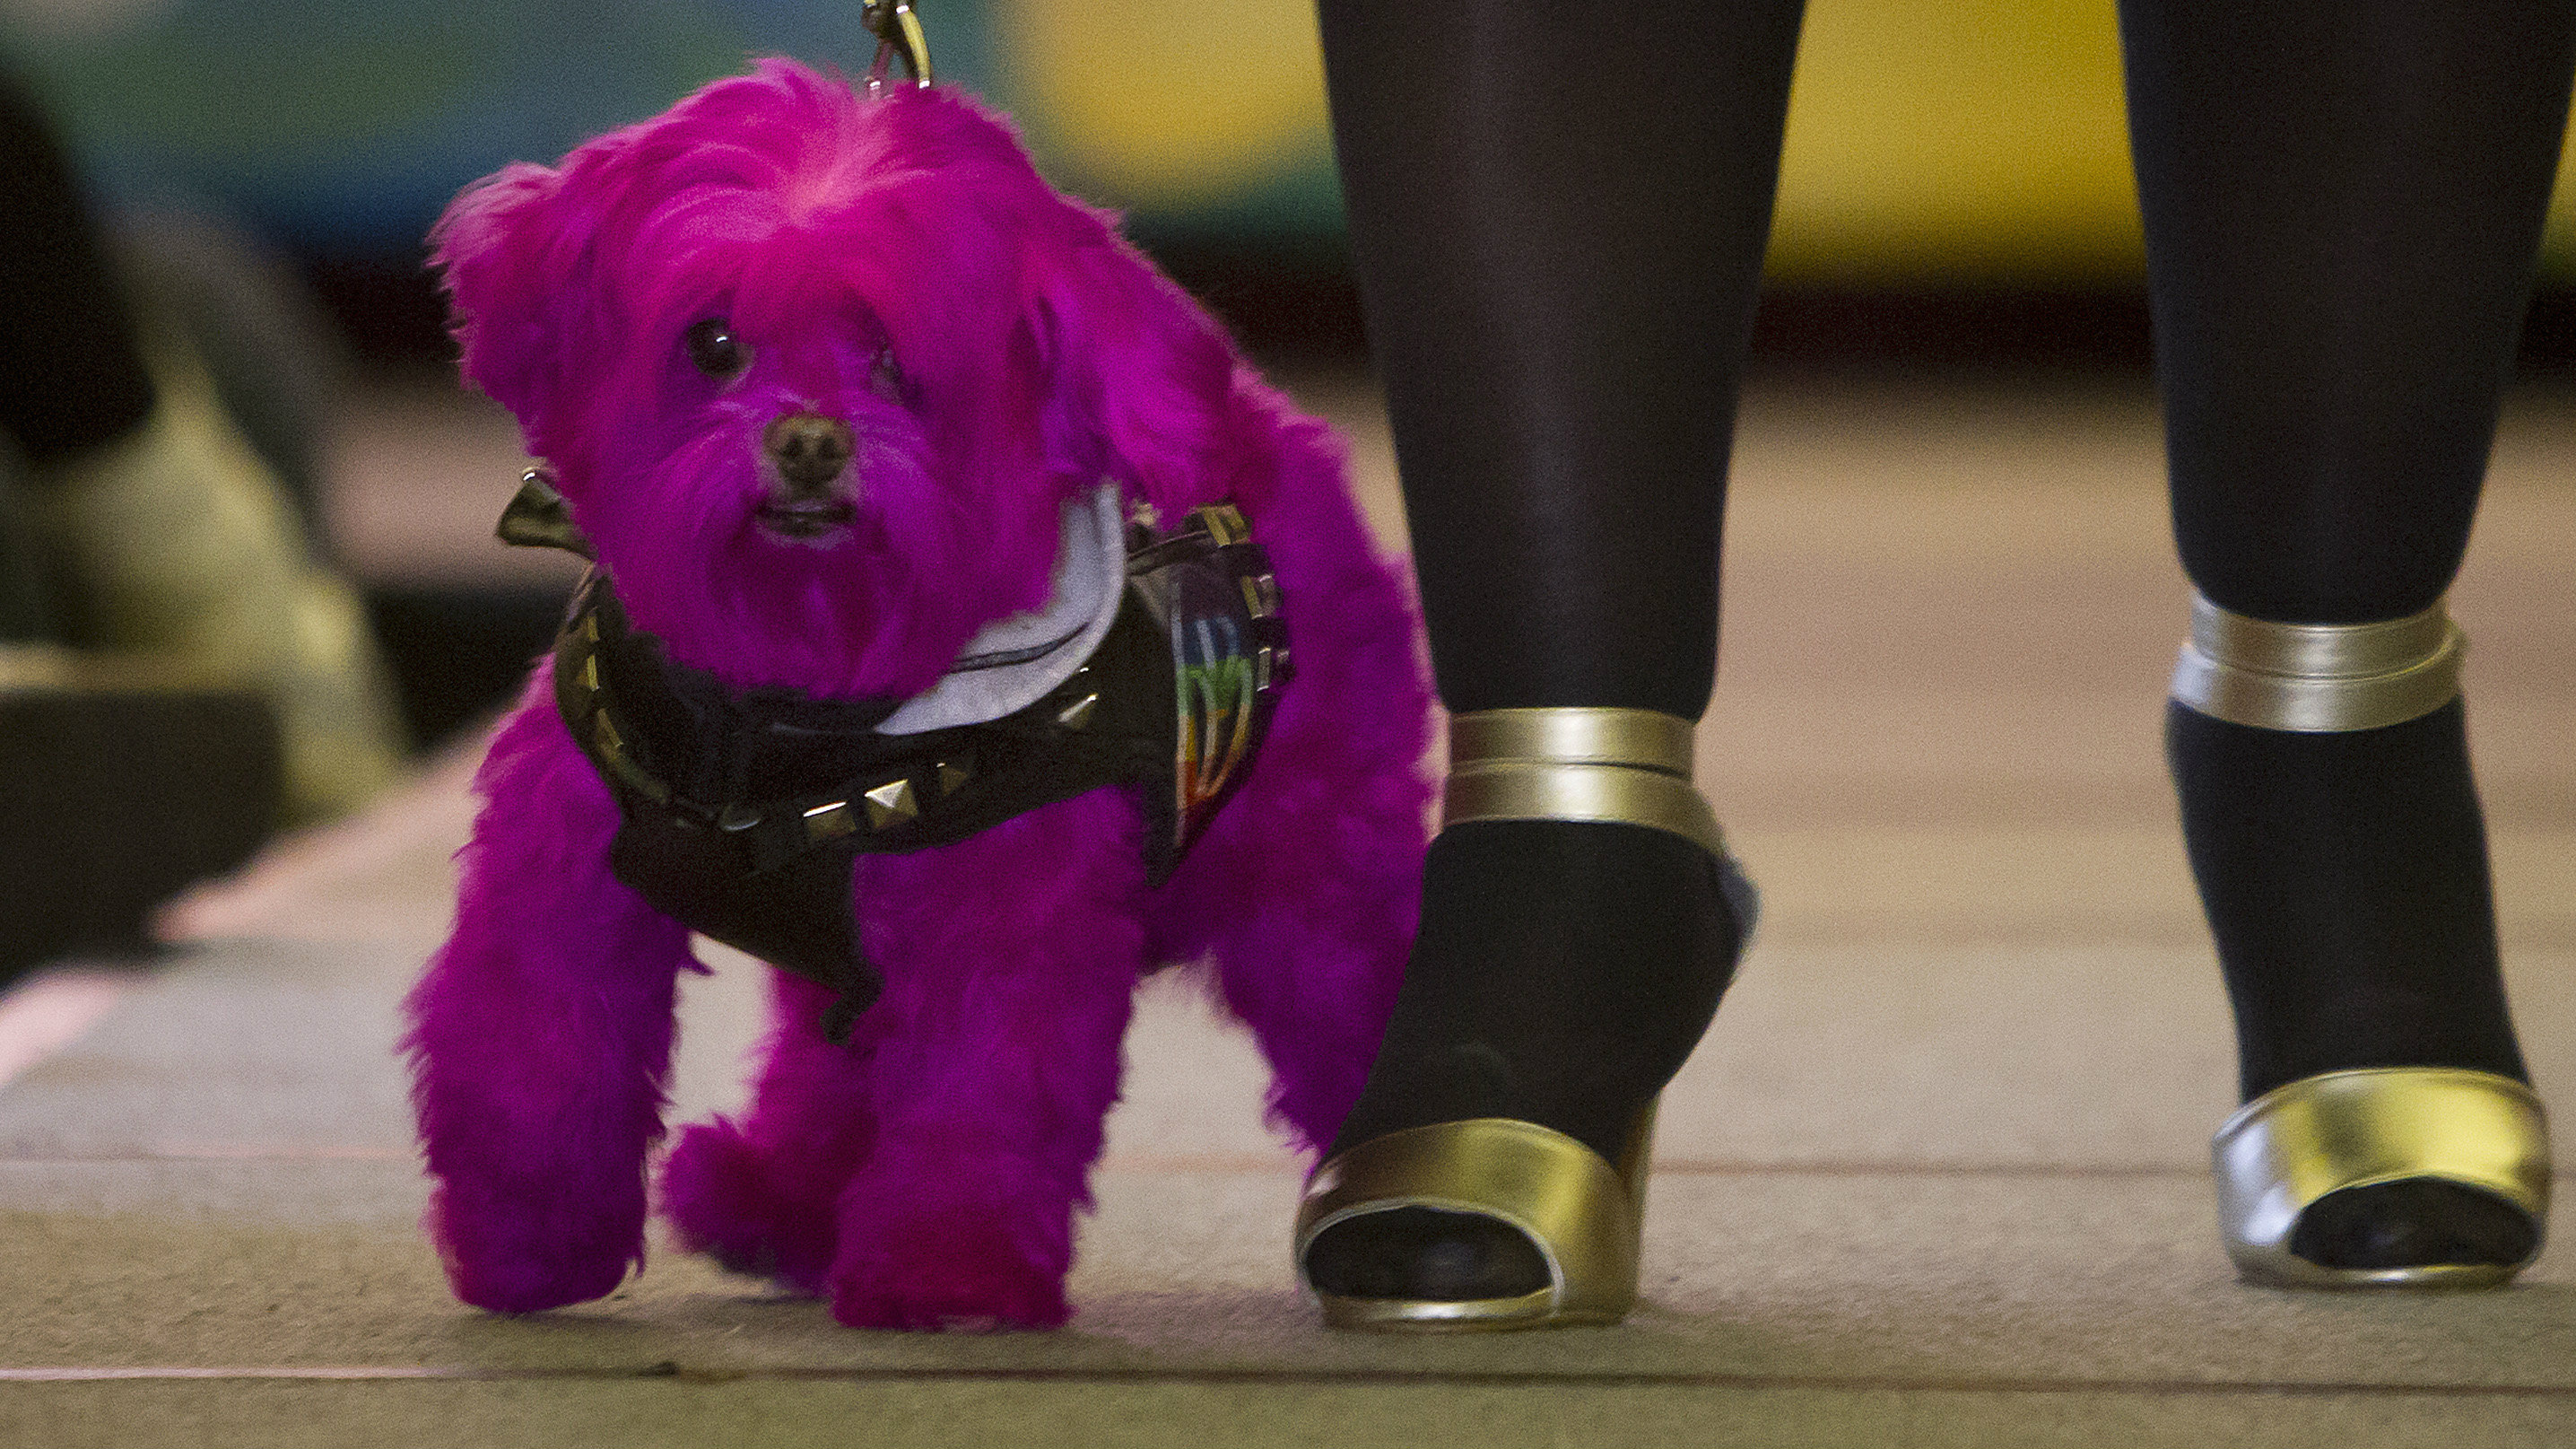 A dog walks the runway during a New York Pet Fashion Show event during Fashion Week in the Manhattan borough of New York February 12, 2015.